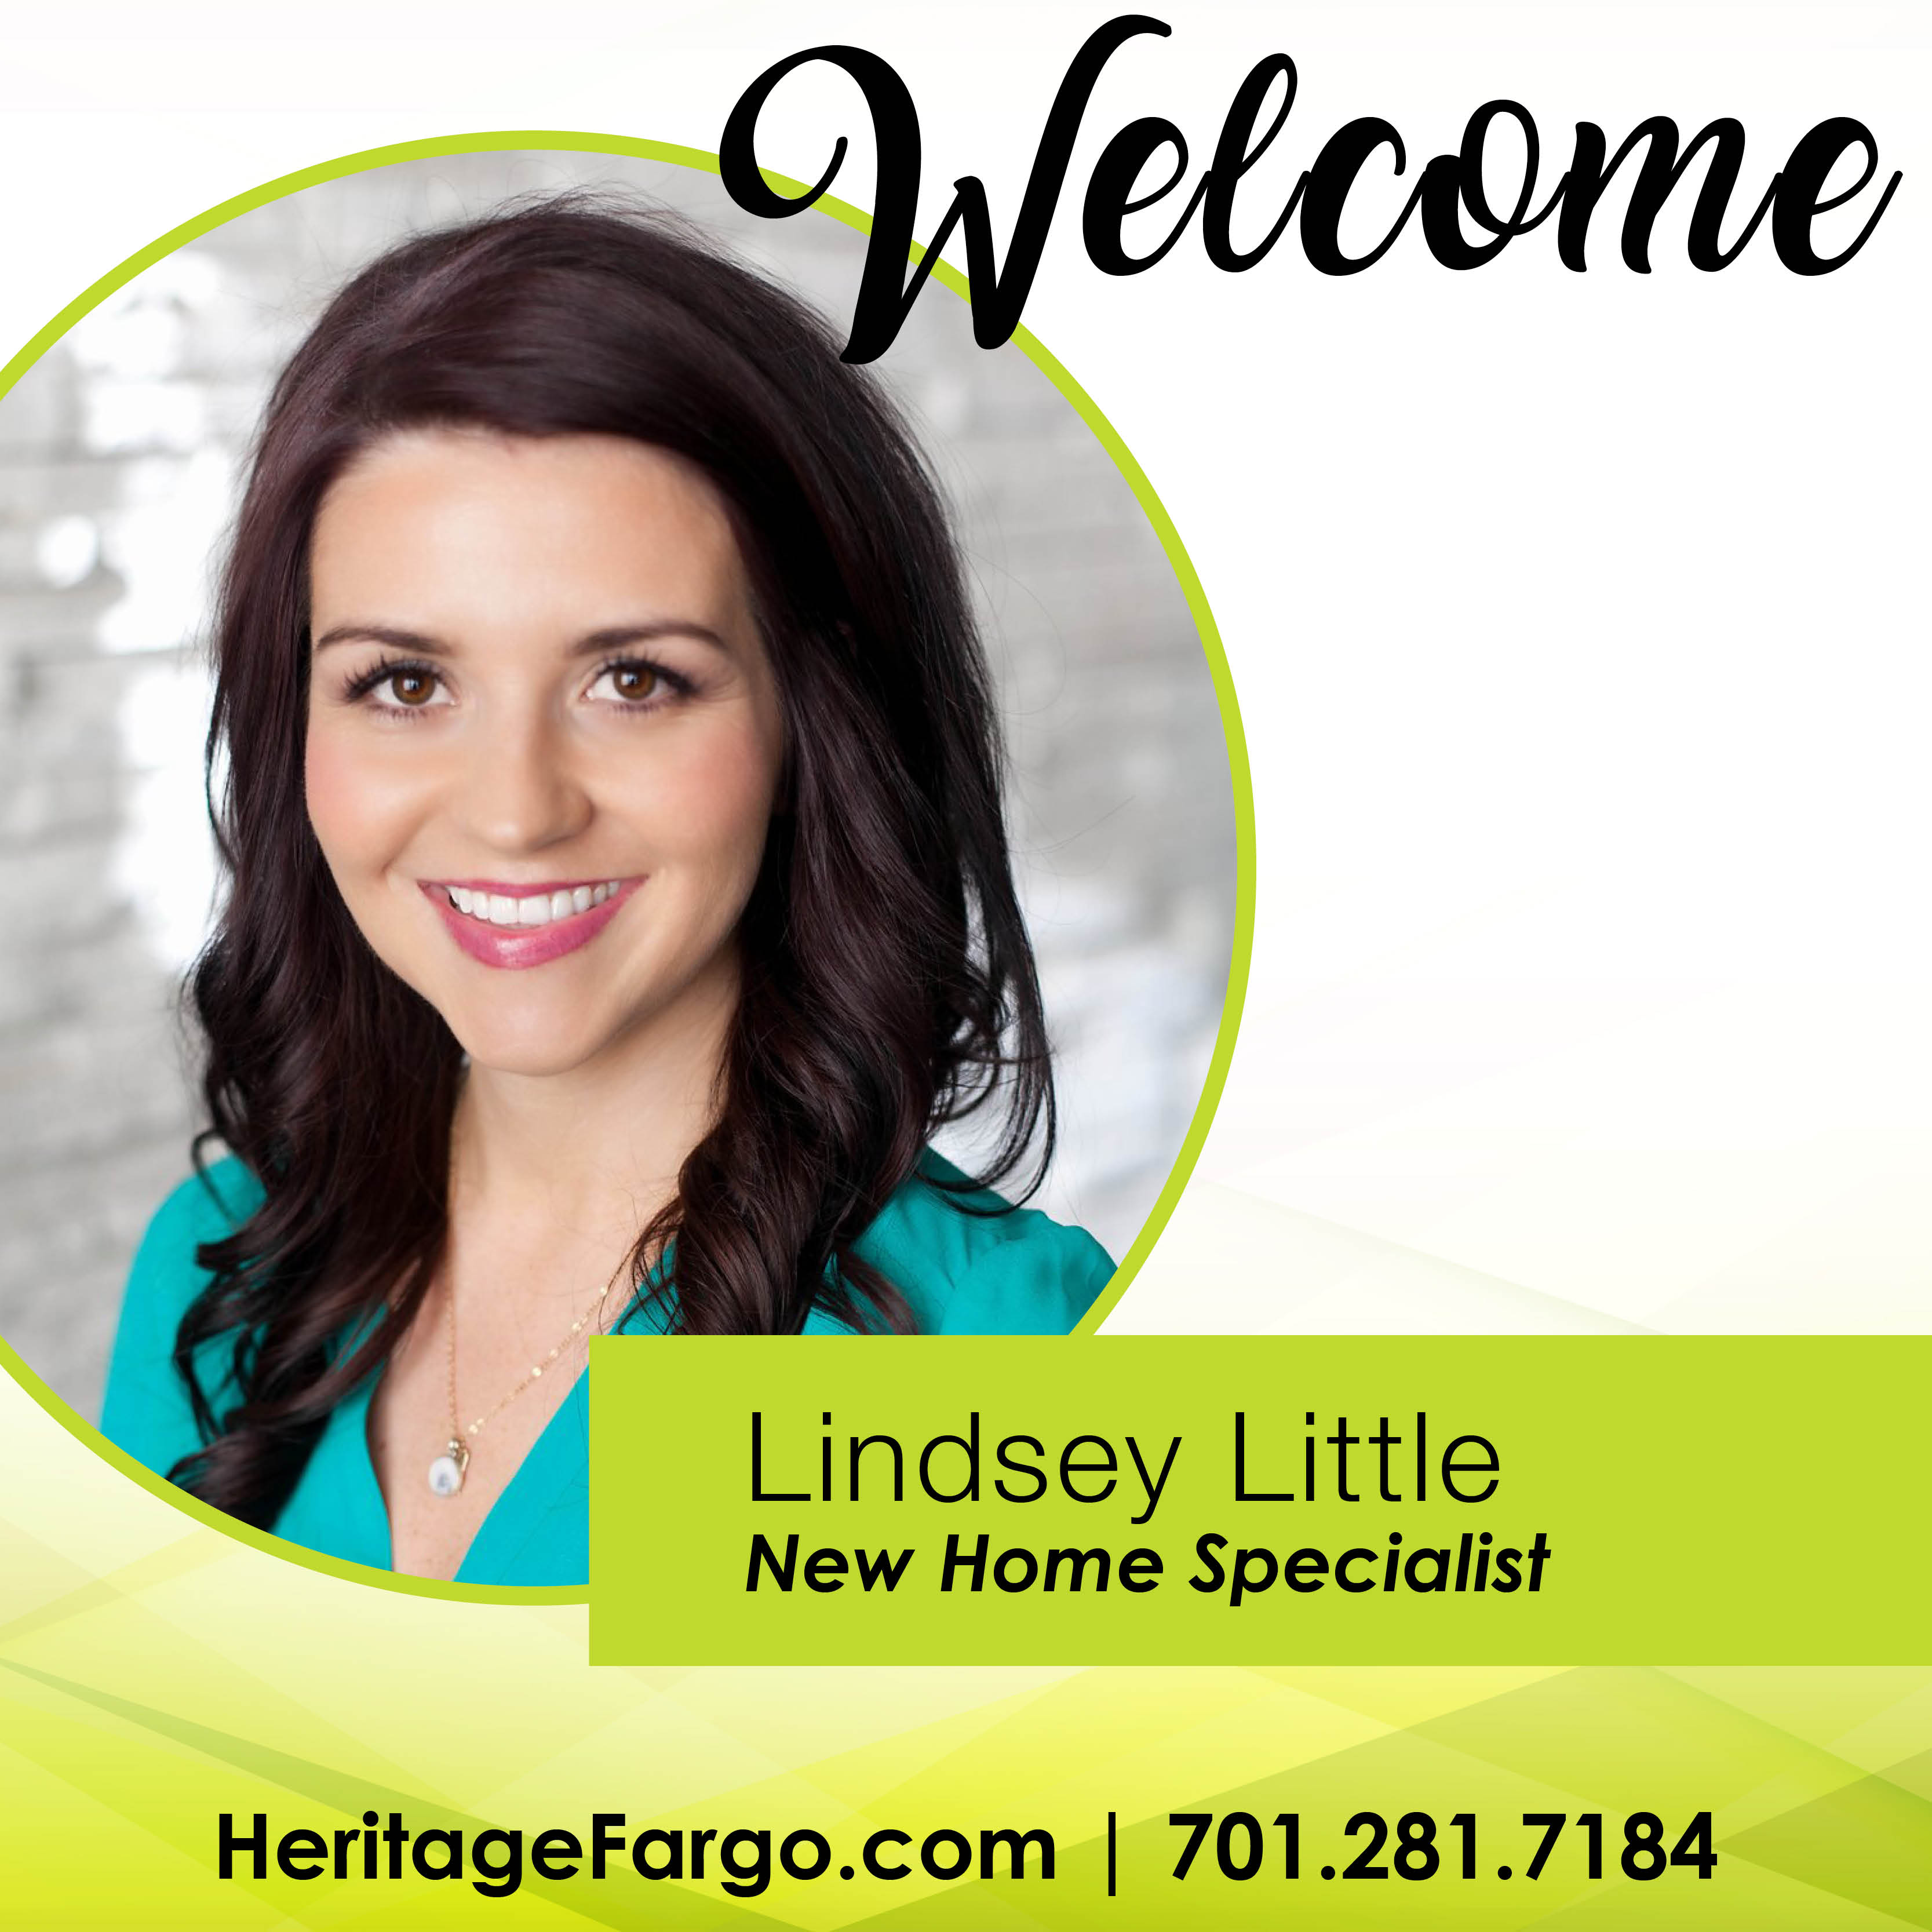 Welcome Lindsey Little: New Home Specialist